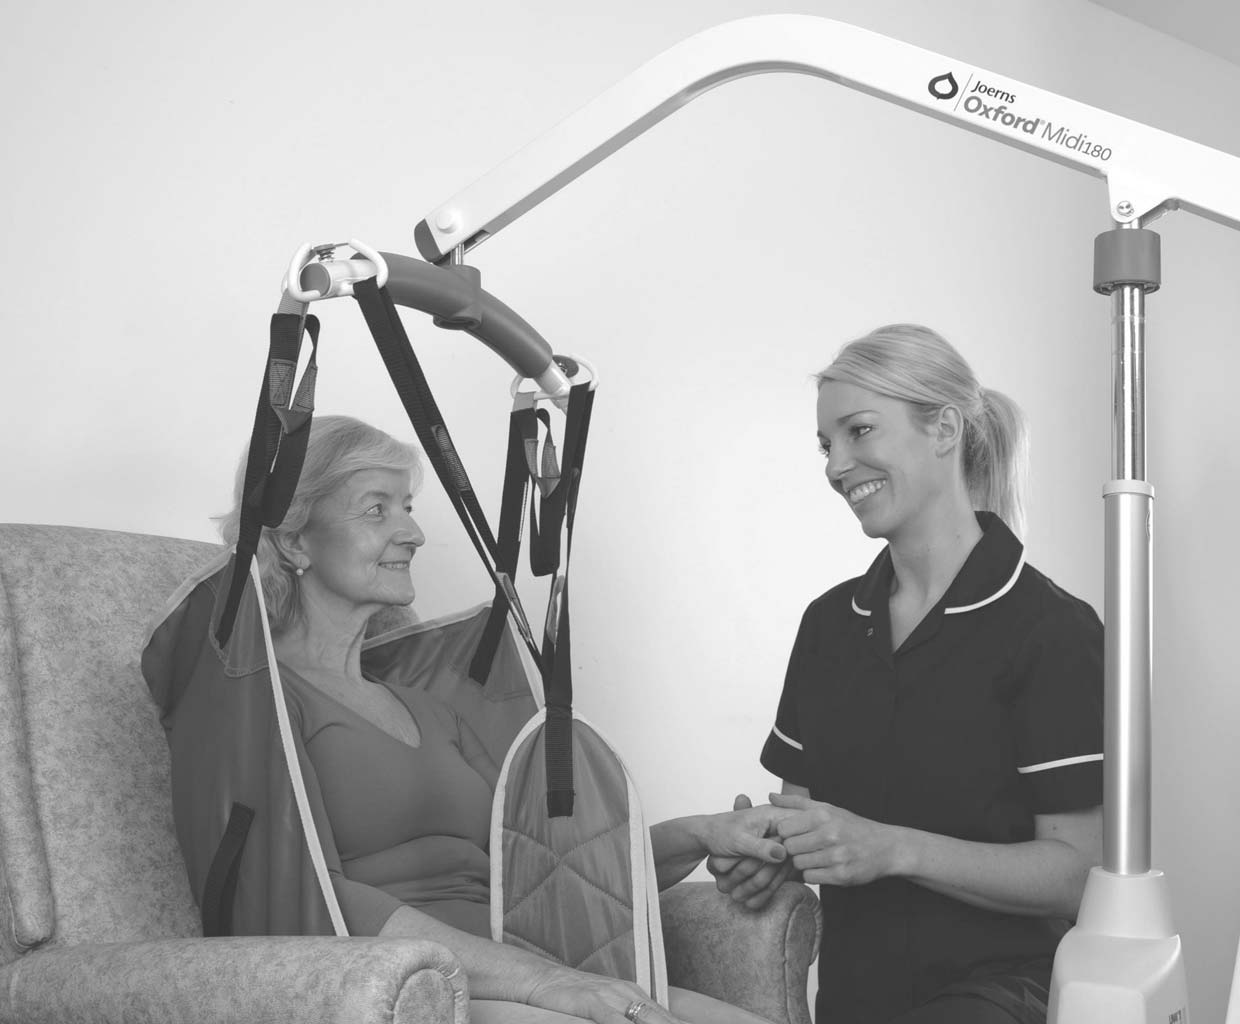 Sling Selection - Interested in our range of Oxford lifts, slings, accessories and beds? Contact Joerns Healthcare to find out more.